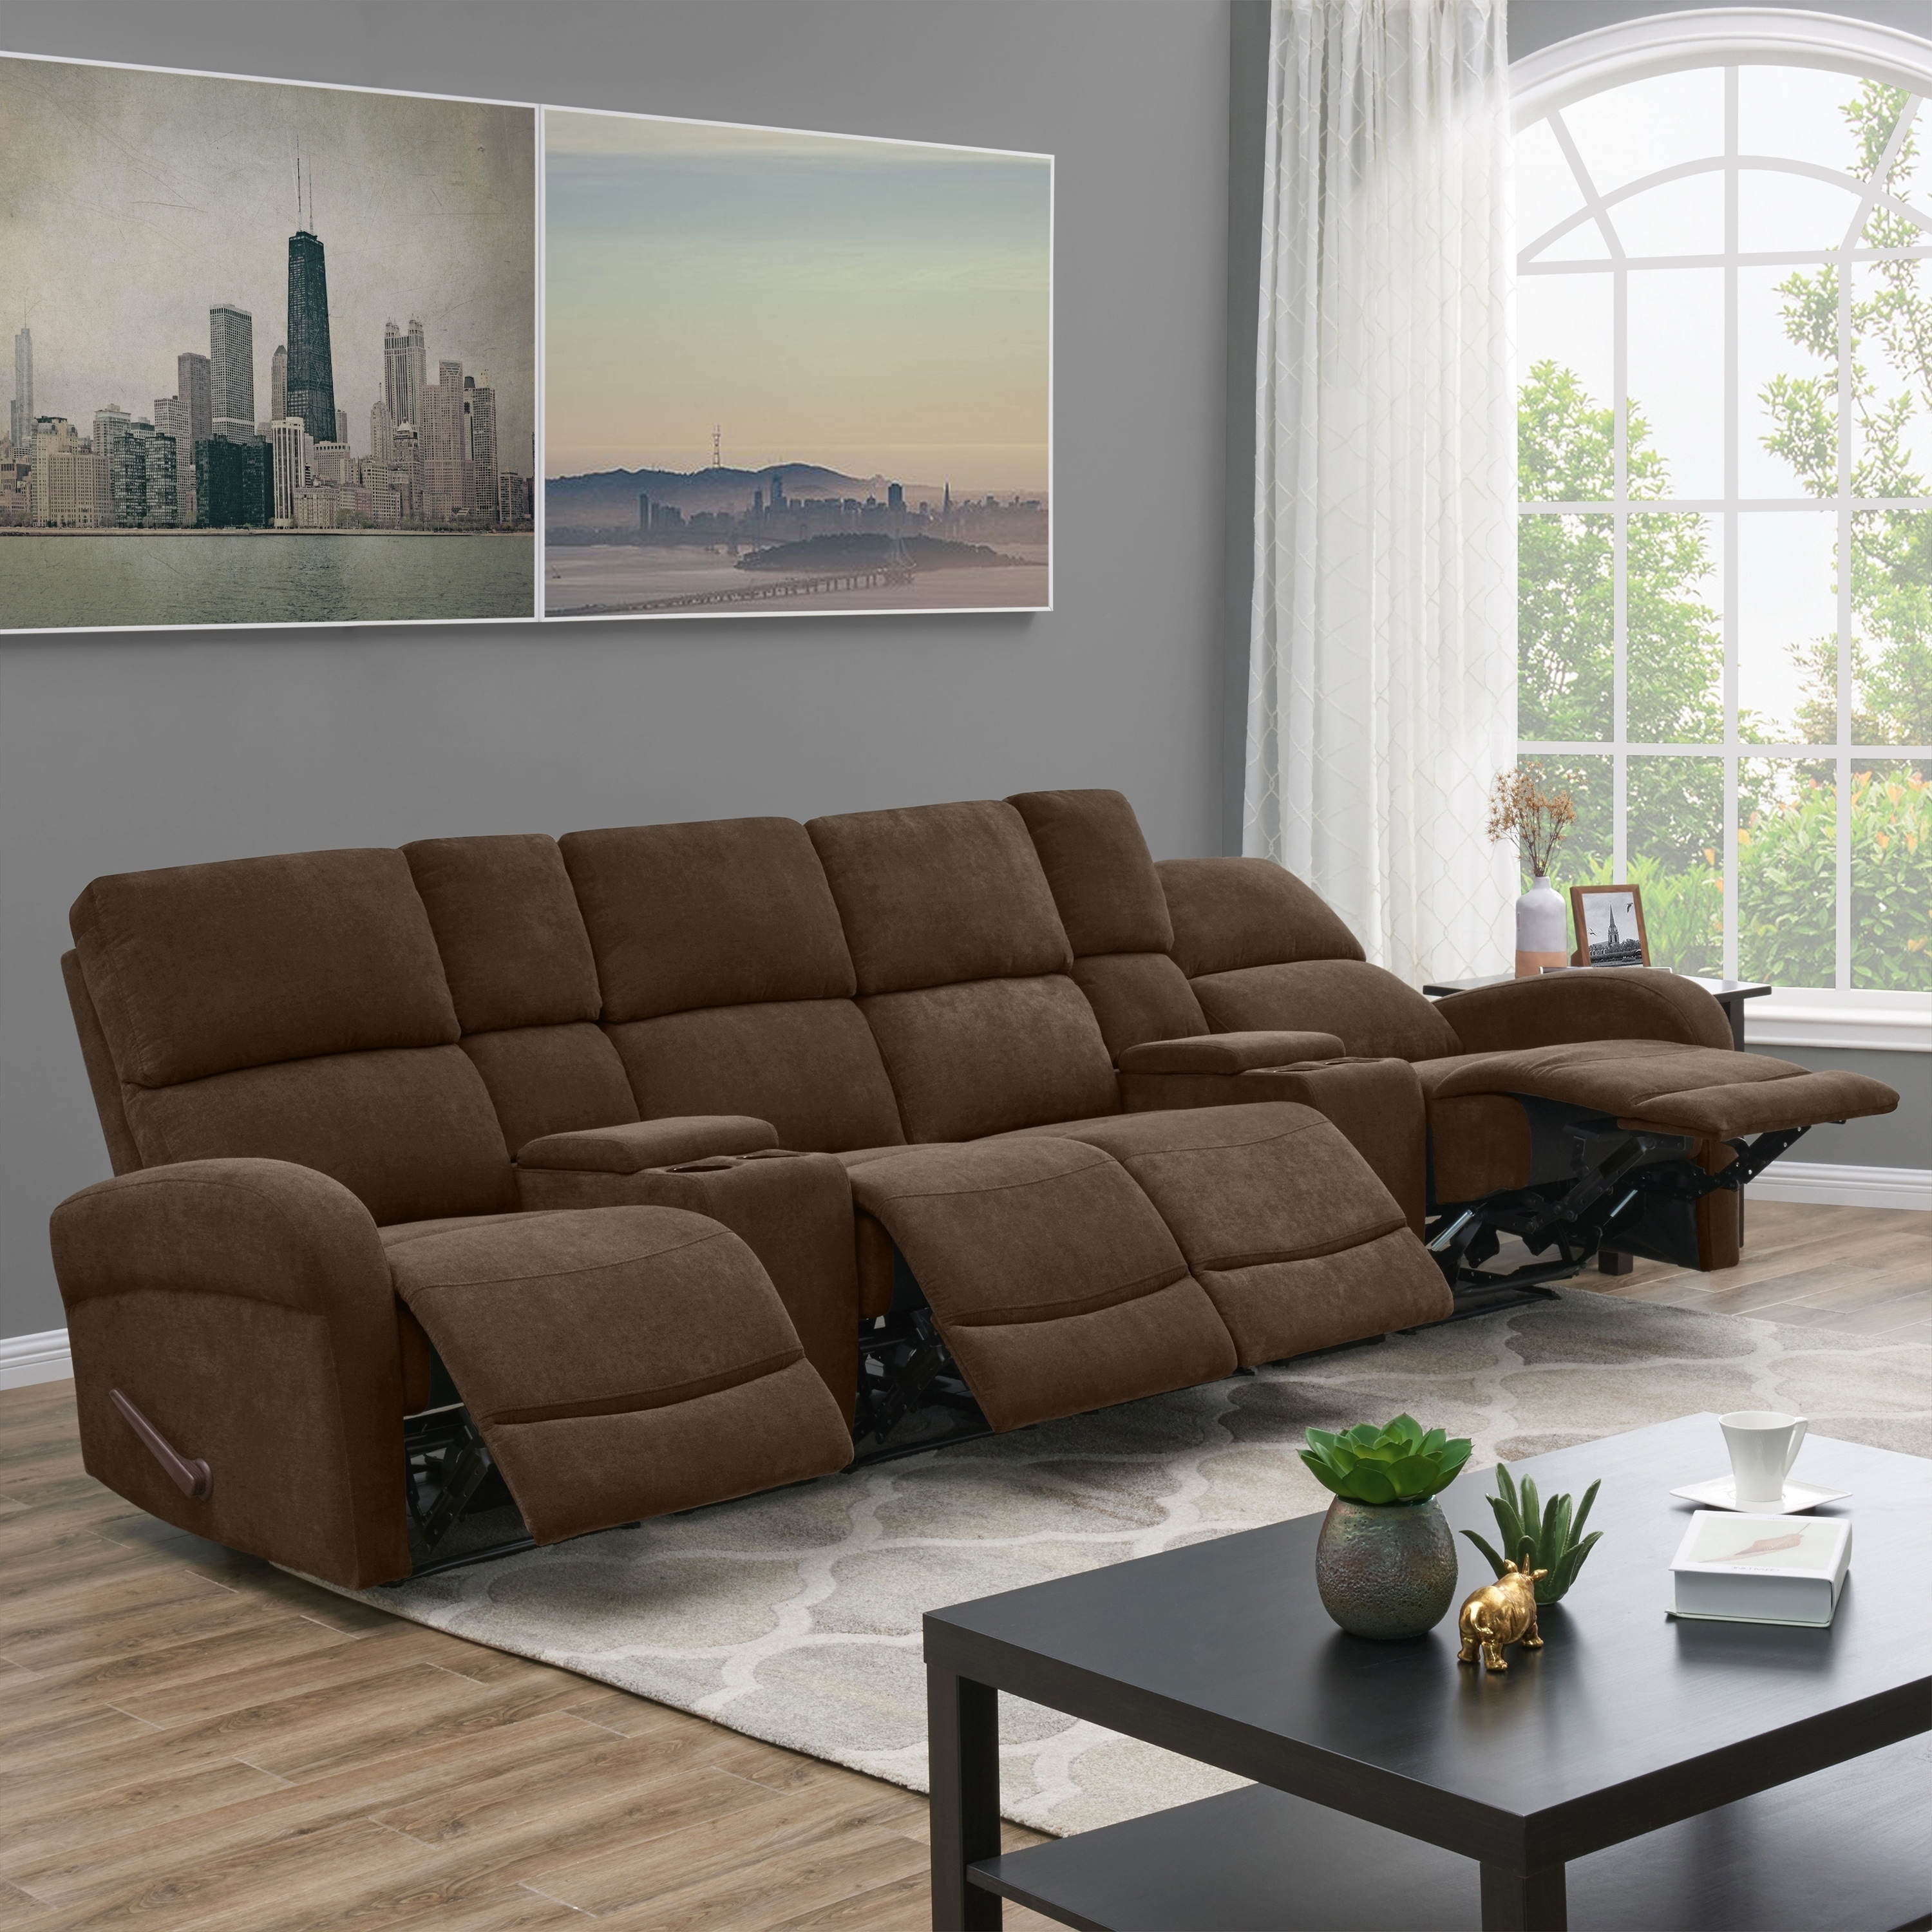 Shop ProLounger Brown Chenille 4 Seat Recliner Sofa With Power Storage  Consoles   Free Shipping Today   Overstock.com   23129116